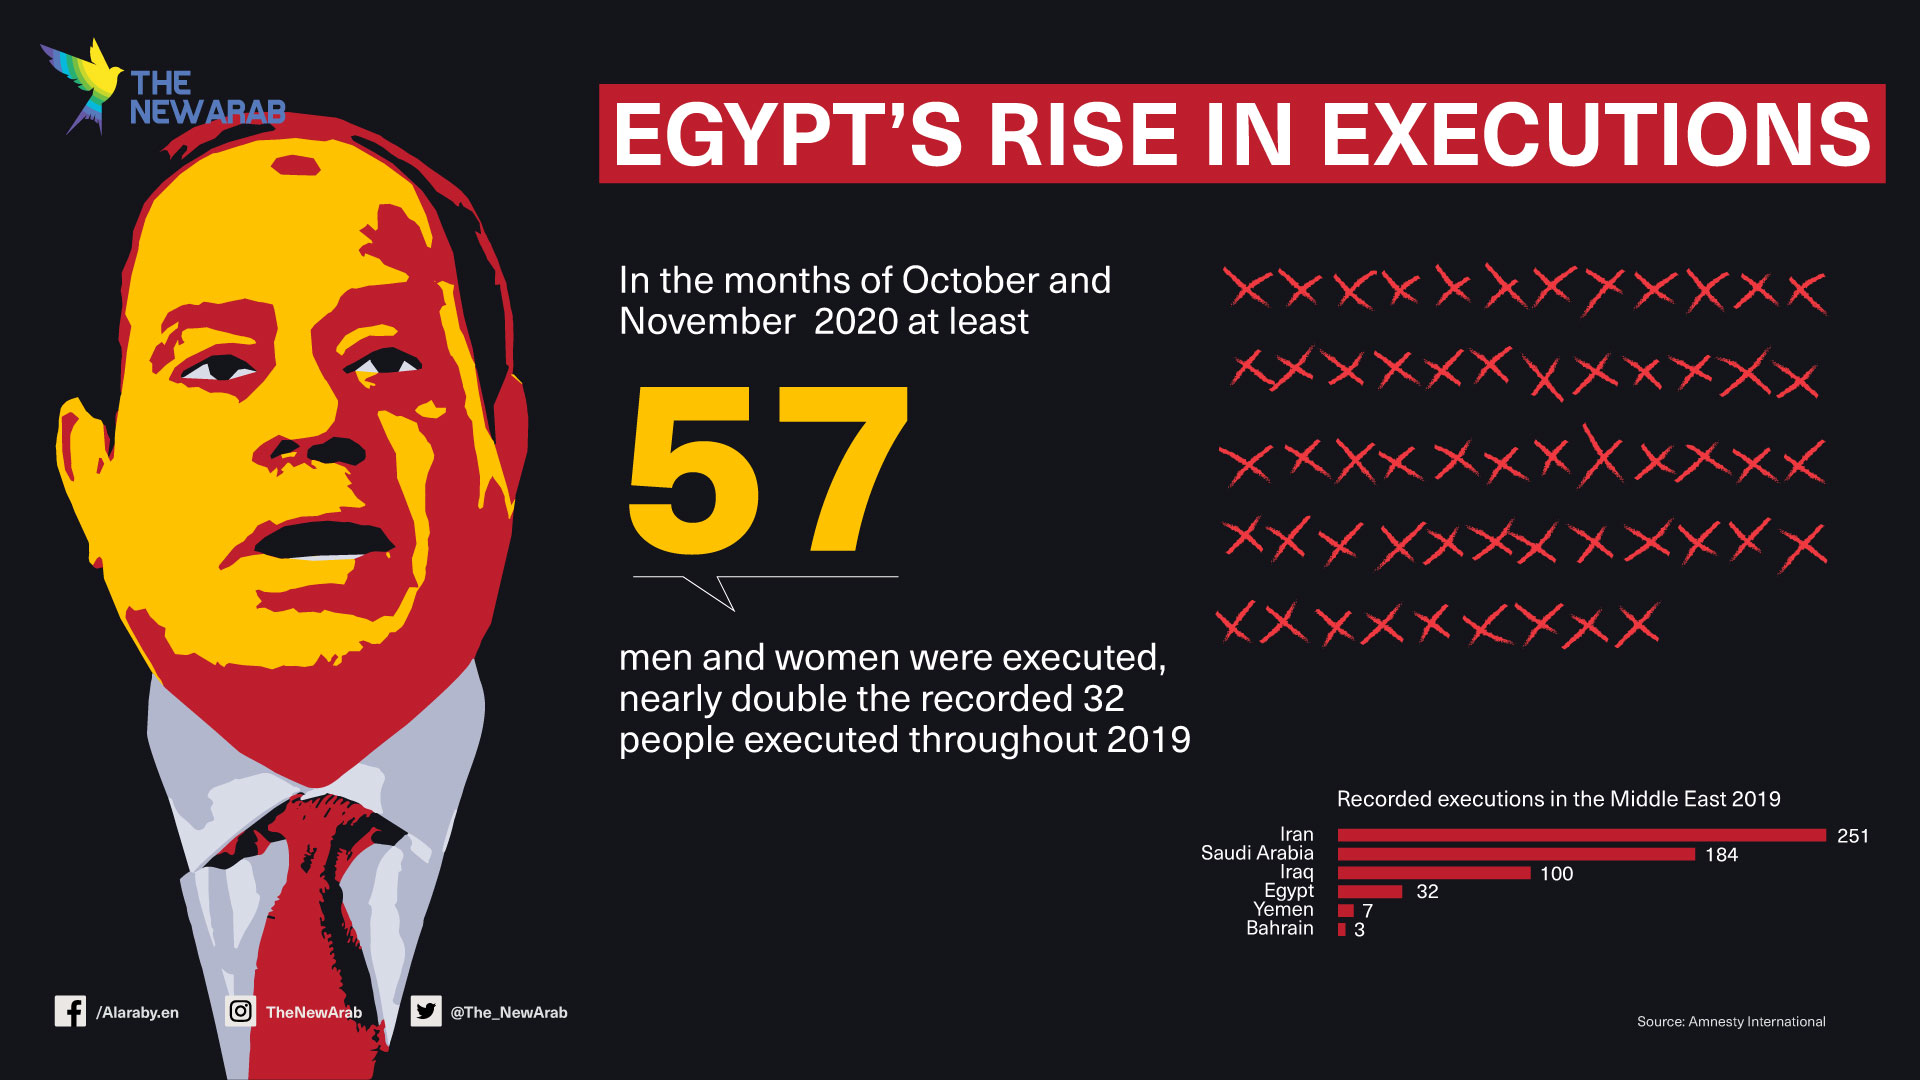 Egypt's rise in executions